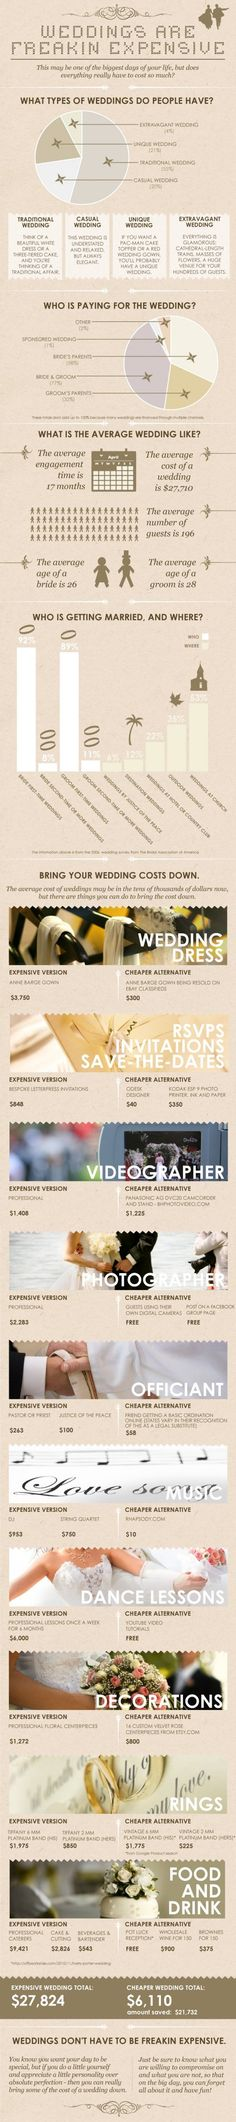 How to save money on your wedding.